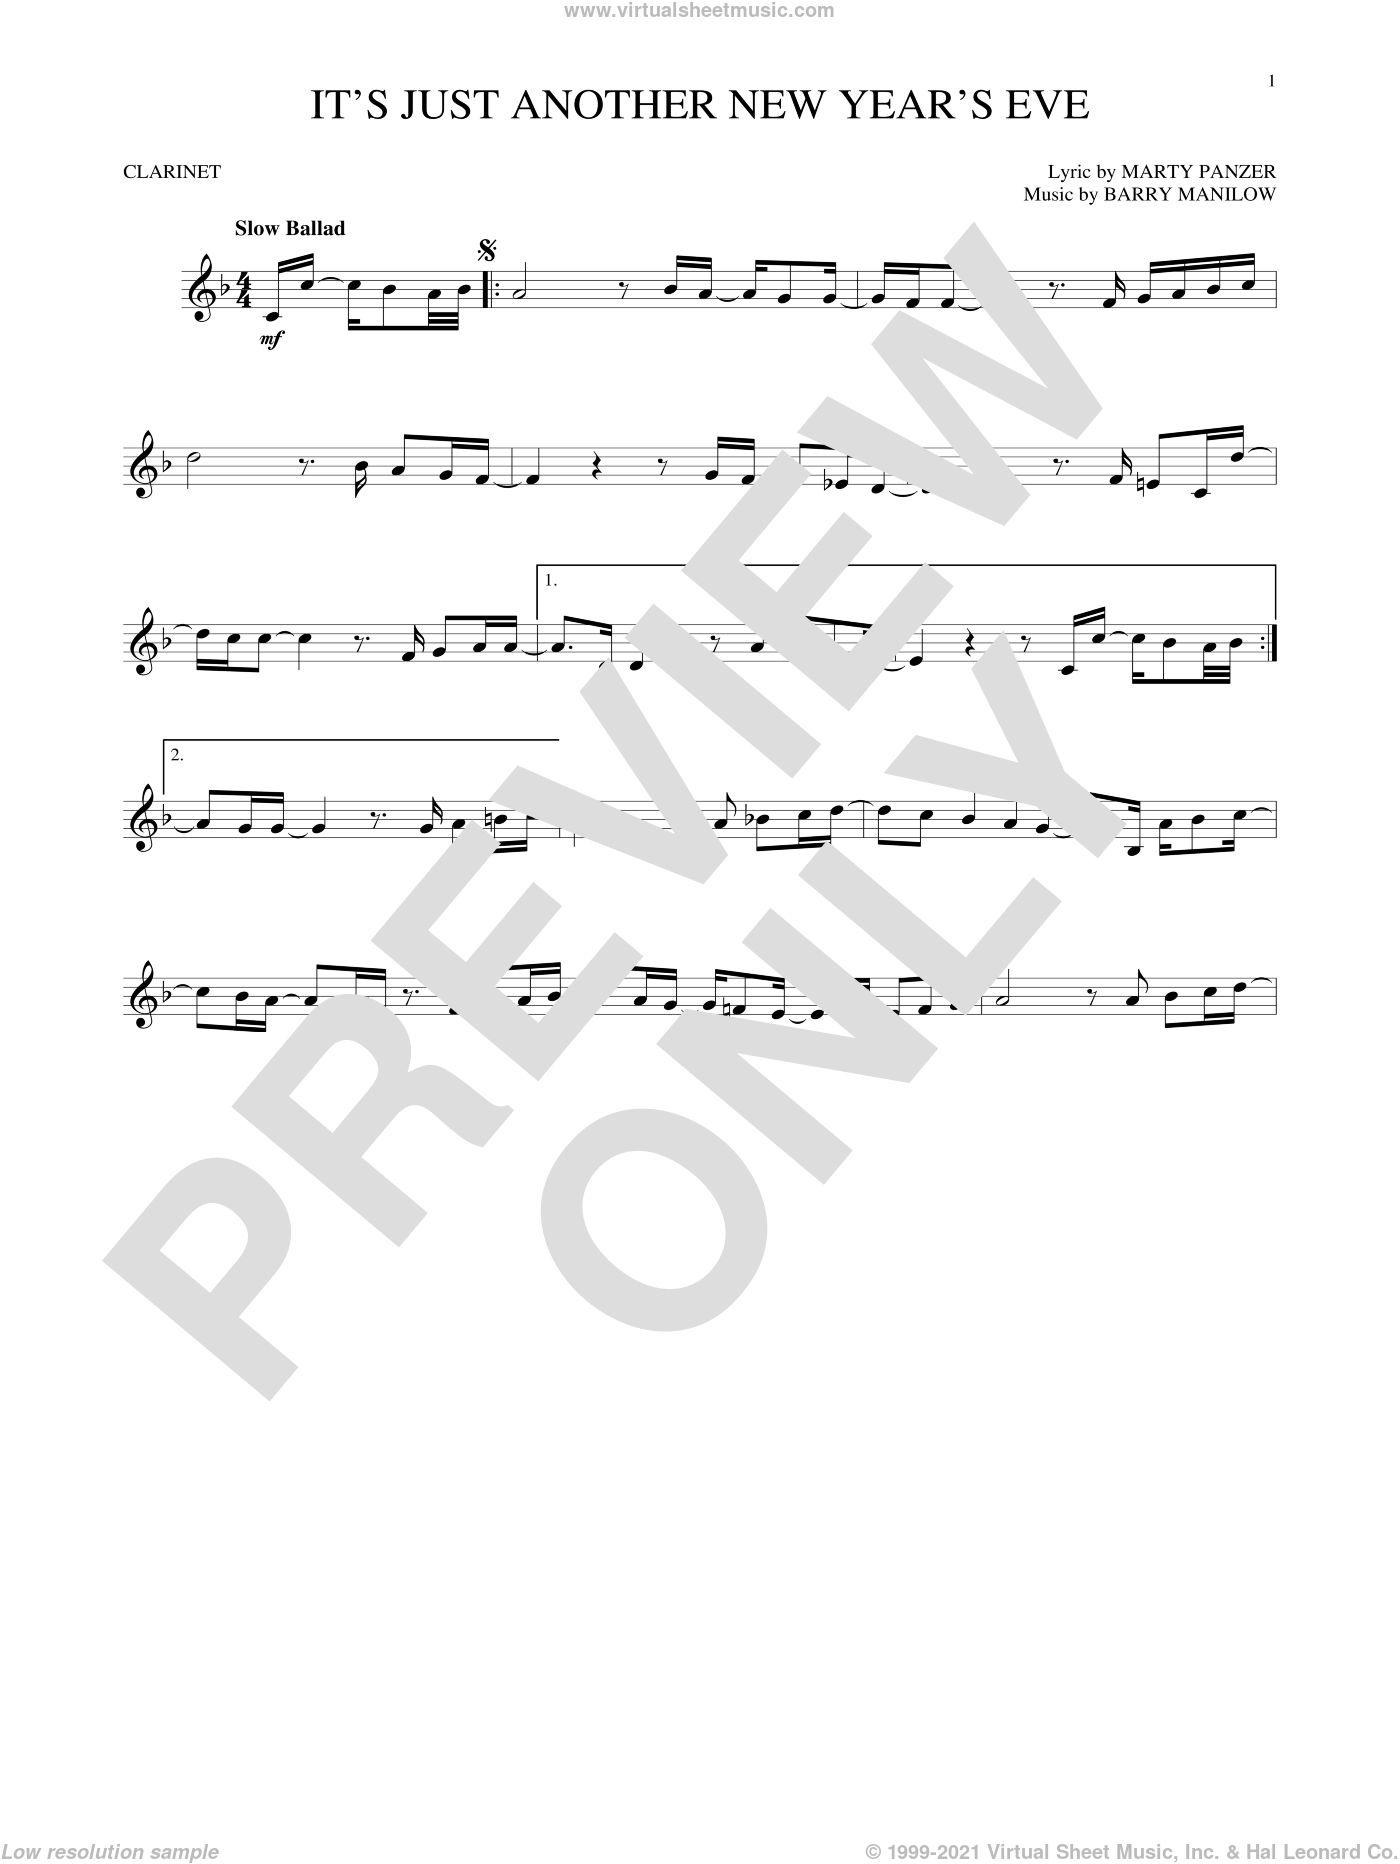 It's Just Another New Year's Eve sheet music for clarinet solo by Barry Manilow and Marty Panzer, intermediate